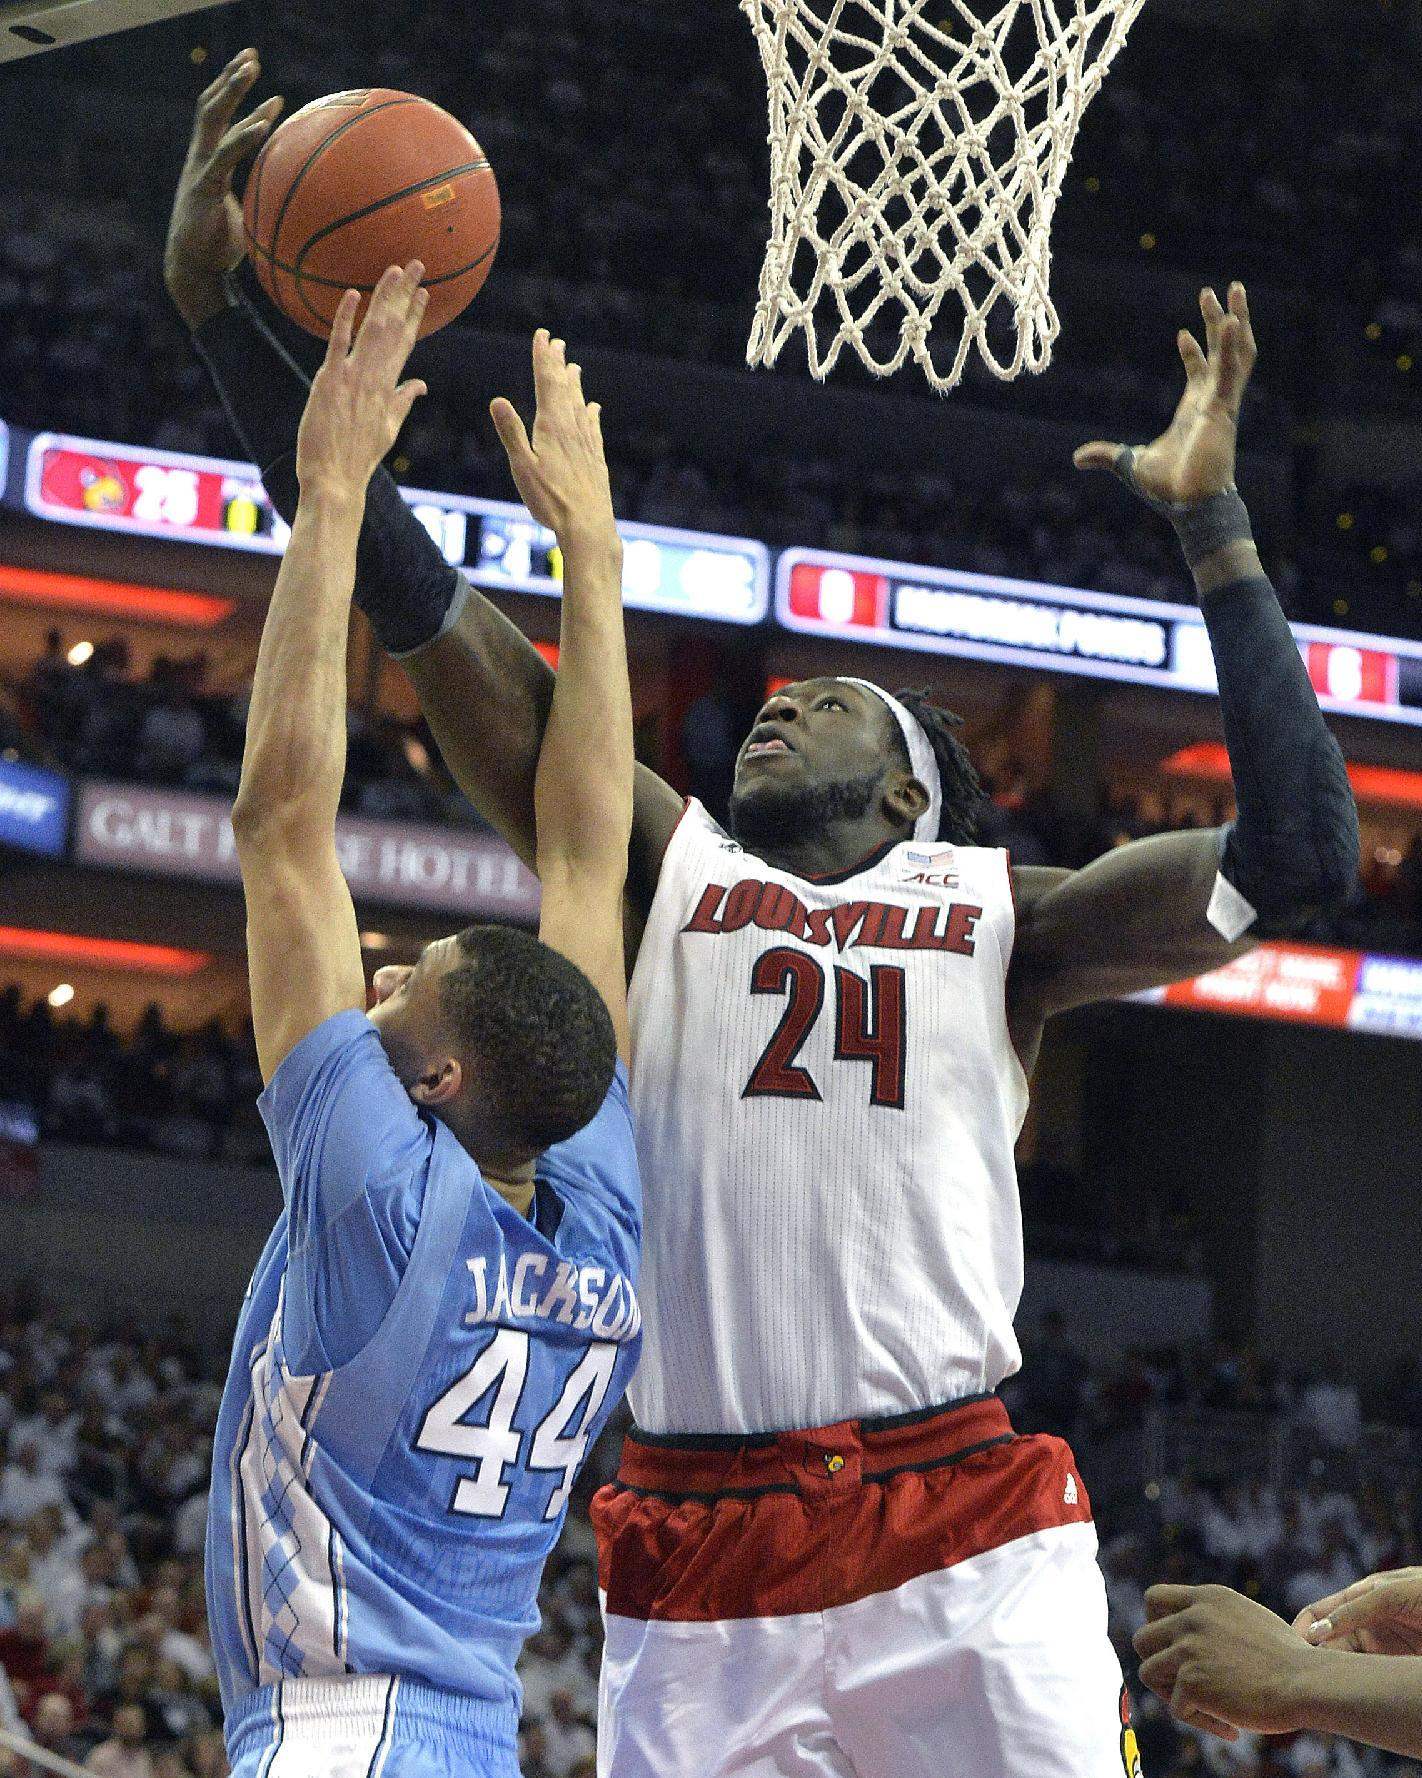 Louisville rallies from 18 down to beat UNC 78-68 in OT